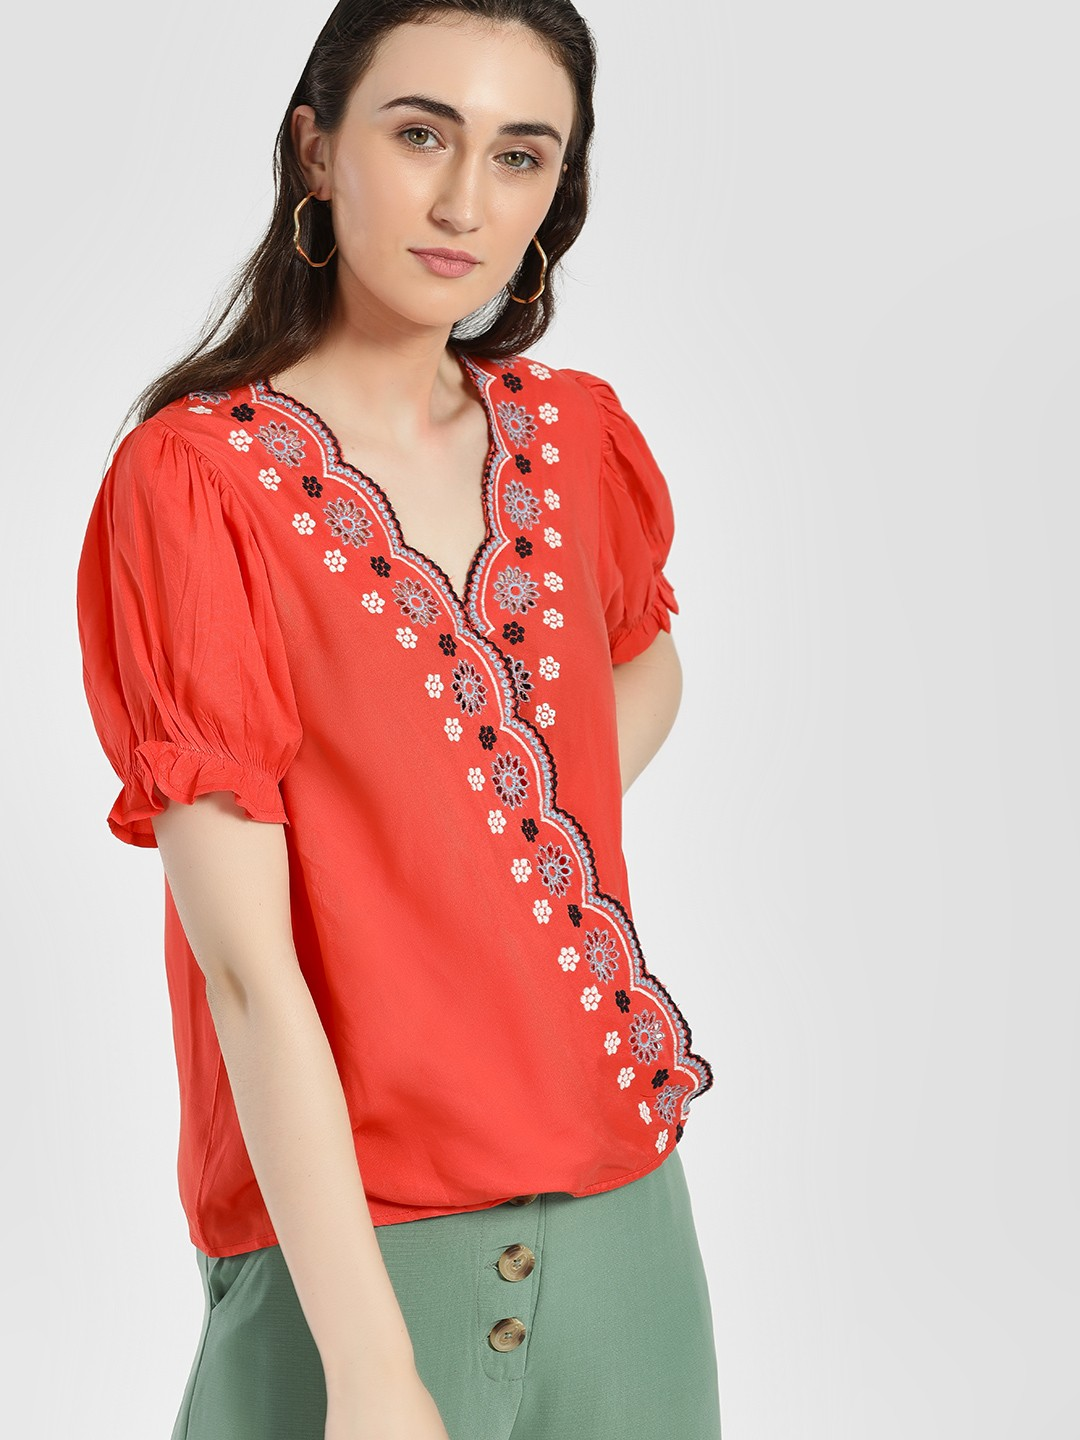 Rena Love Coral Broderie Scalloped Edge Wrap Blouse 1